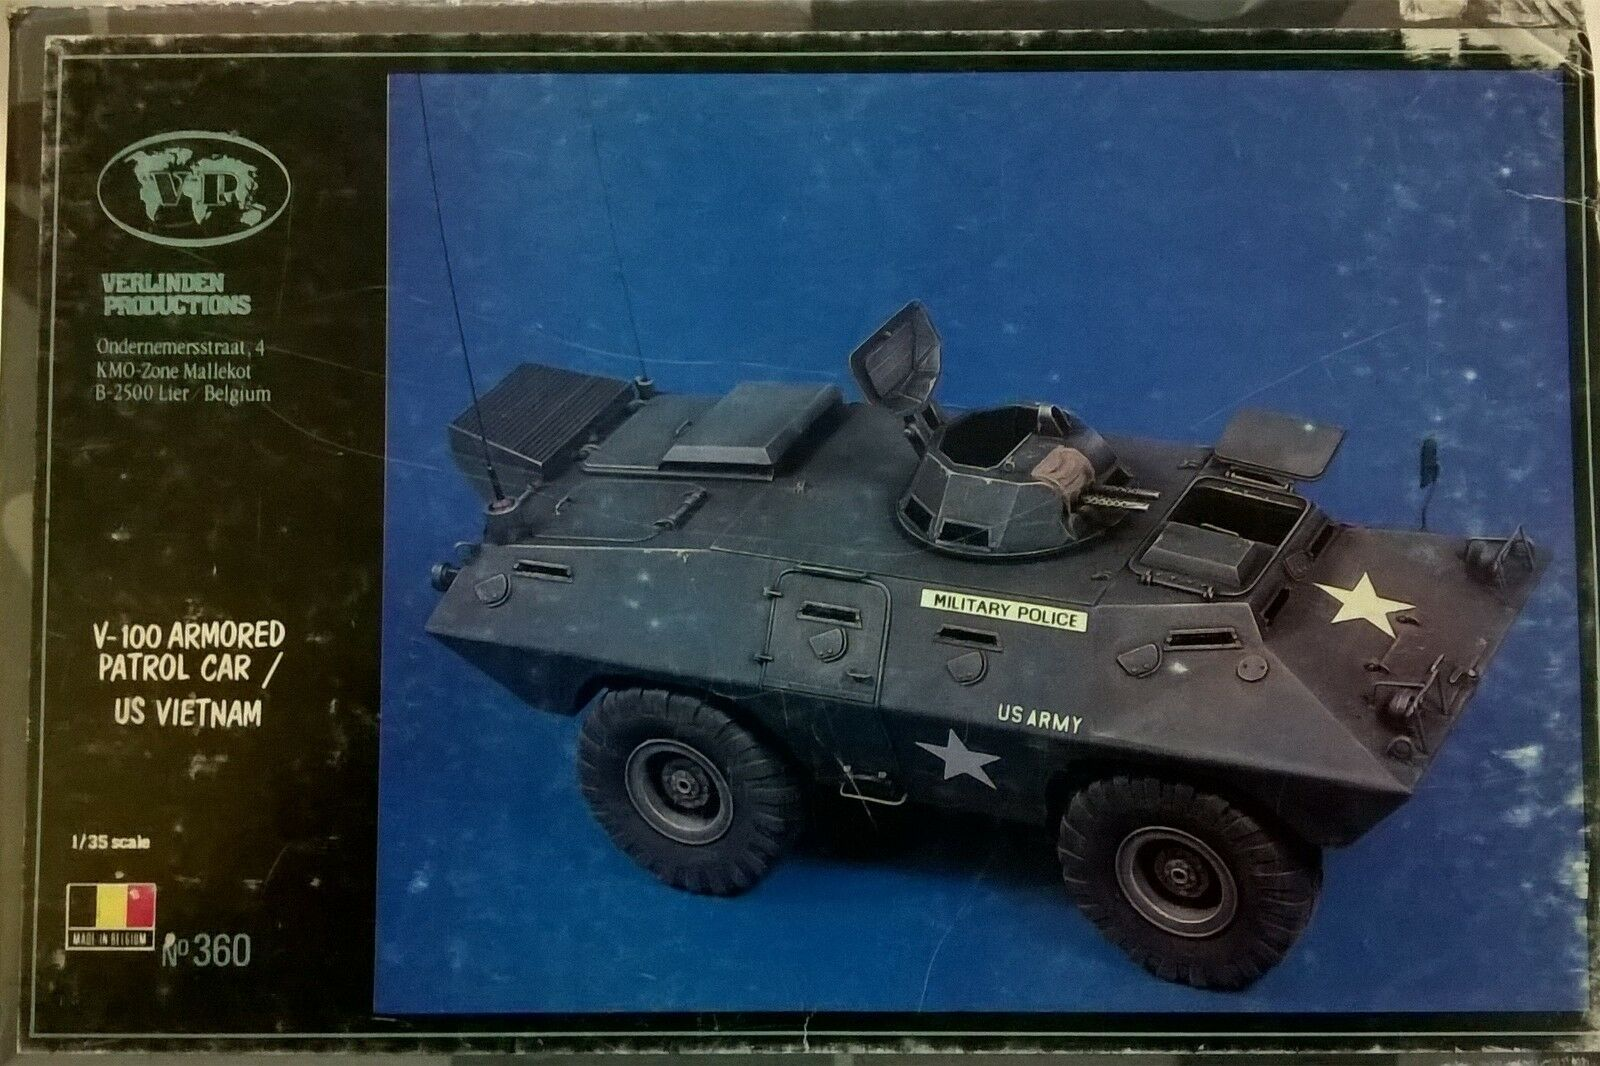 Verlinden 1 35 v-100 Armored Patrol Car US Vietnam Art 360 Discontinued